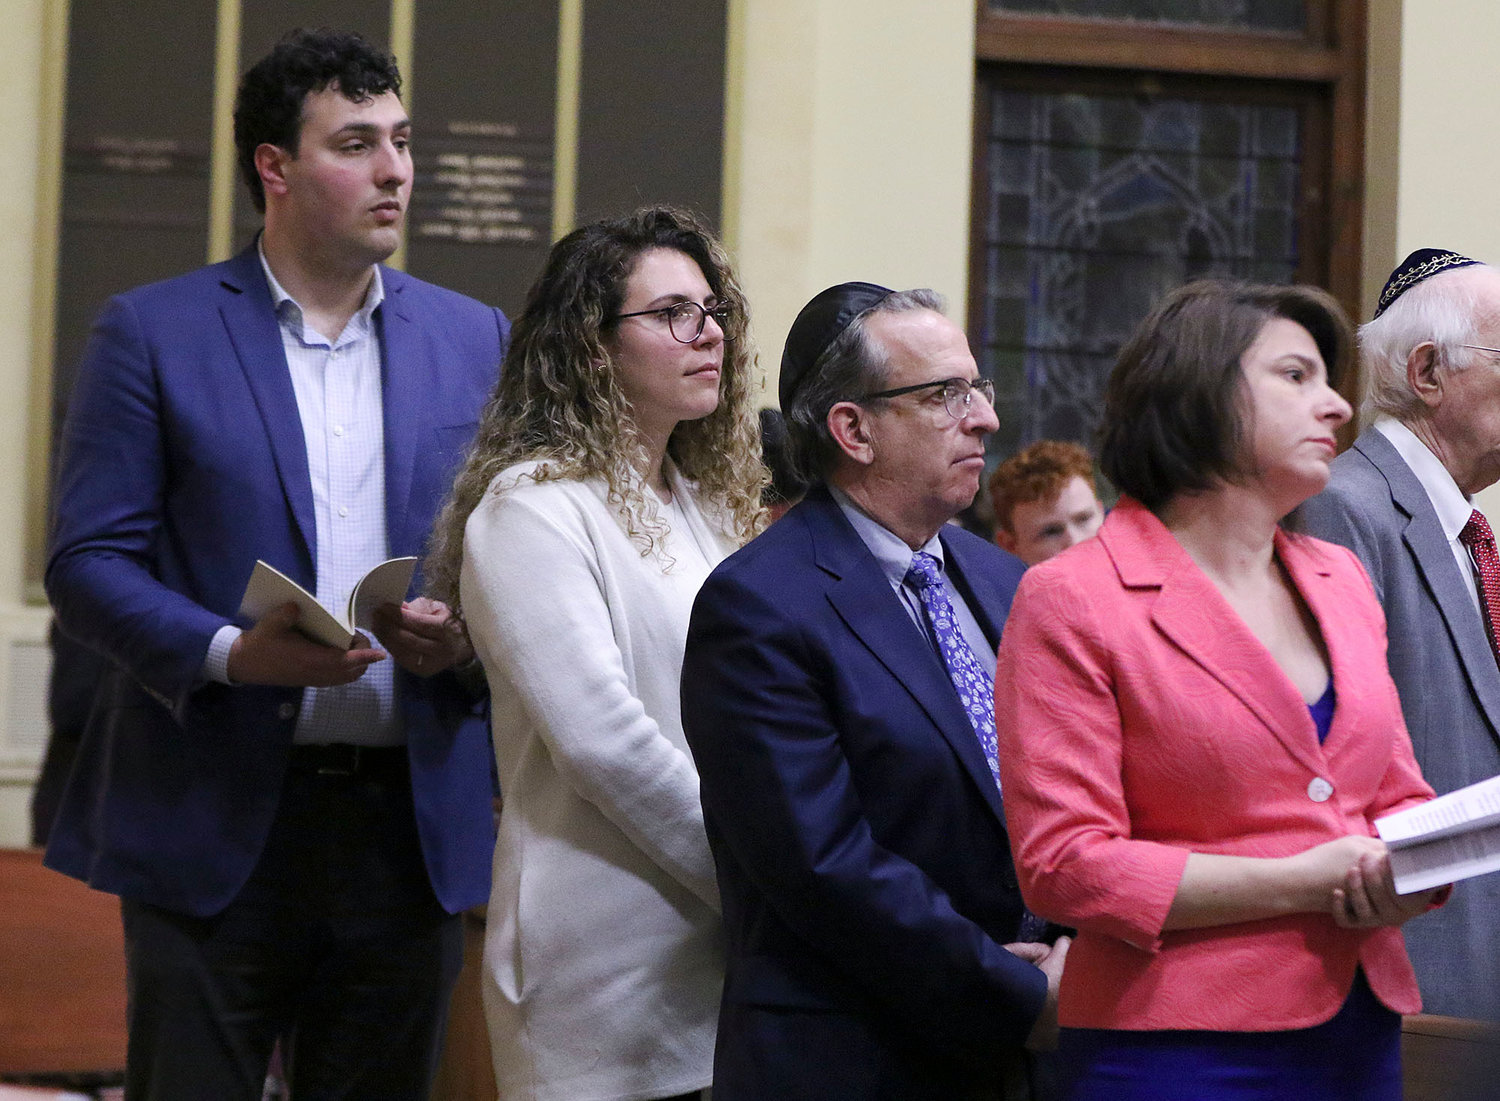 Four state legislators were honored  who sponsored a bill requiring the teaching of the holocaust and genocide studies in RI schools.  They are l to r: Former Rep. Aaron Regunberg, Rep. Katherine Kazarian, Sen. Josh Miller, and Sen. Gayle Goldin.  They are shown listening to local people listed their relatives that were killed in concentration camps.   Jewish Rhode Island/Glenn Osmundson